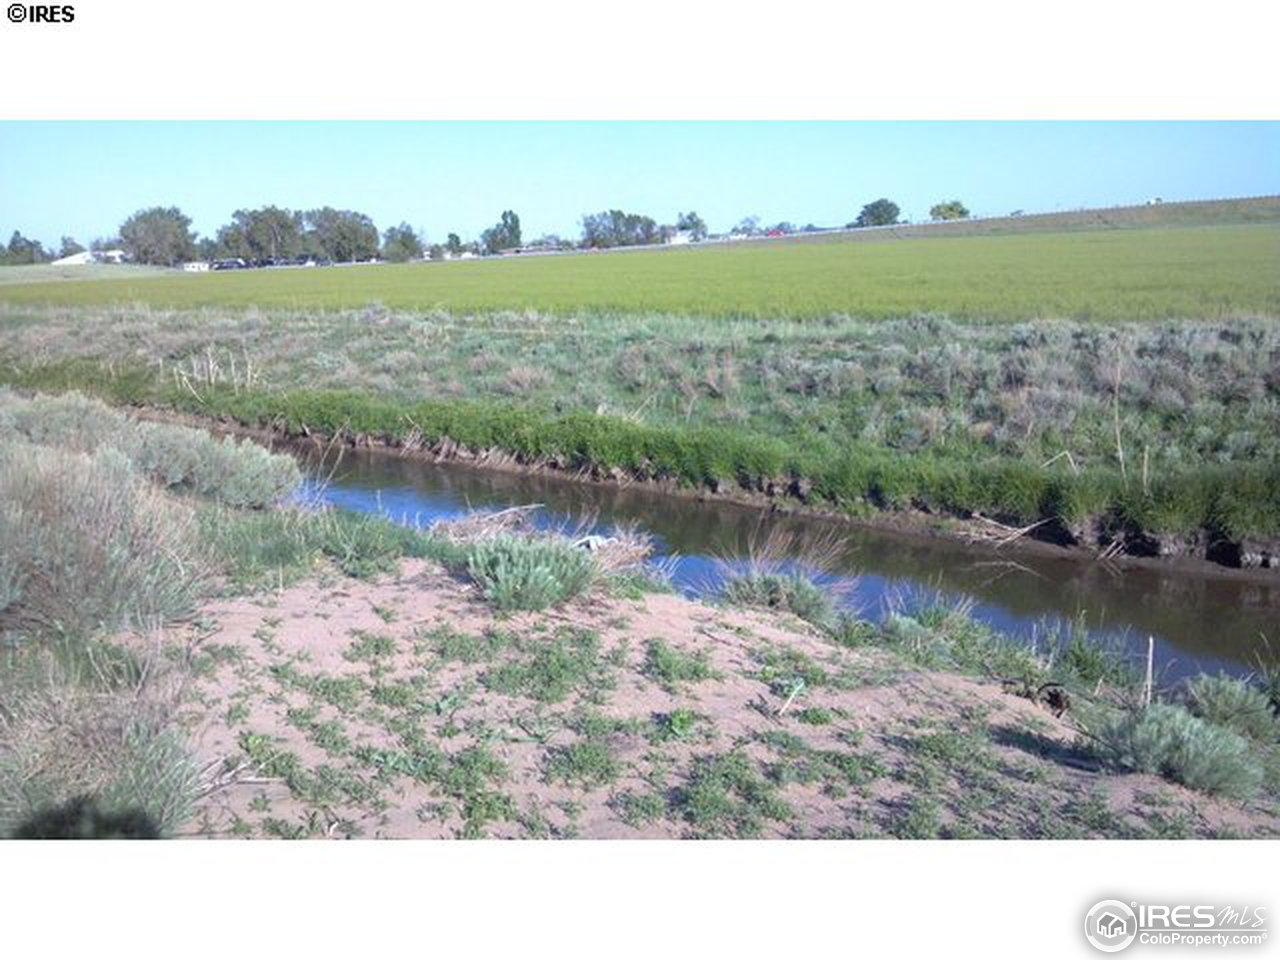 The irrigation ditch on the south side